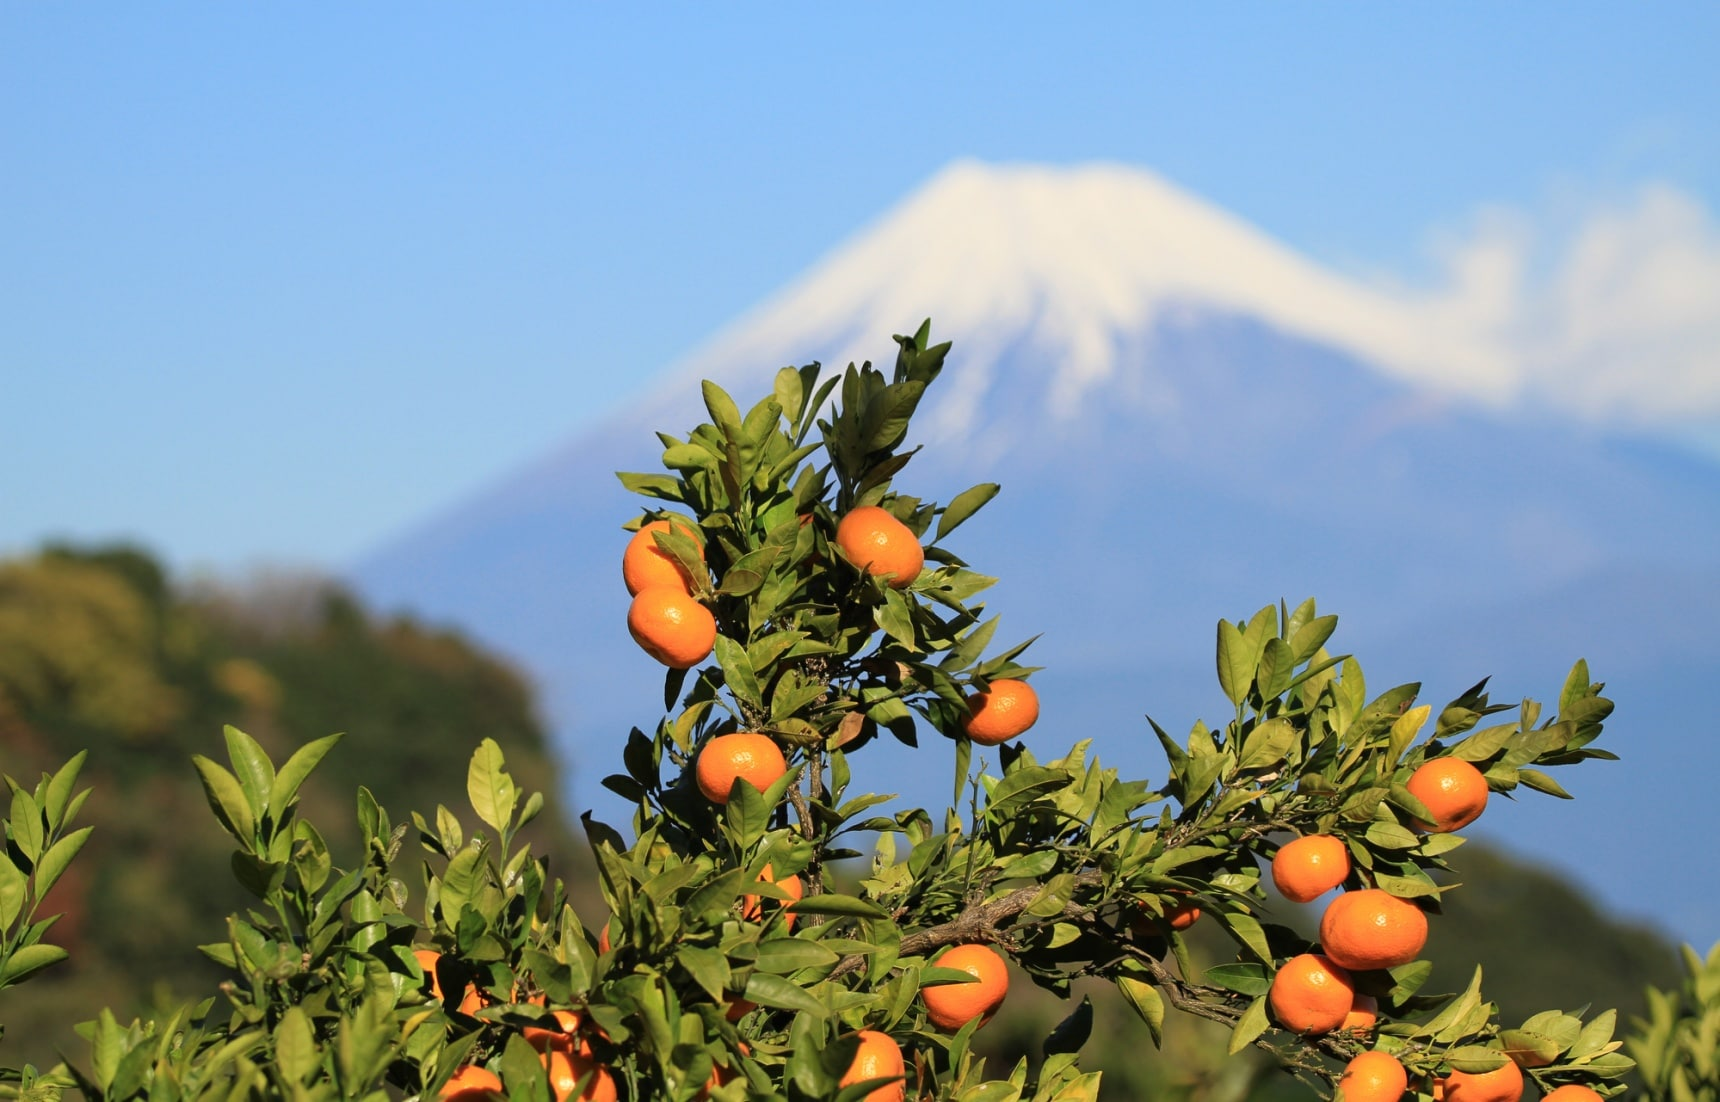 Top Ranked Fruits in Japan for Each Season